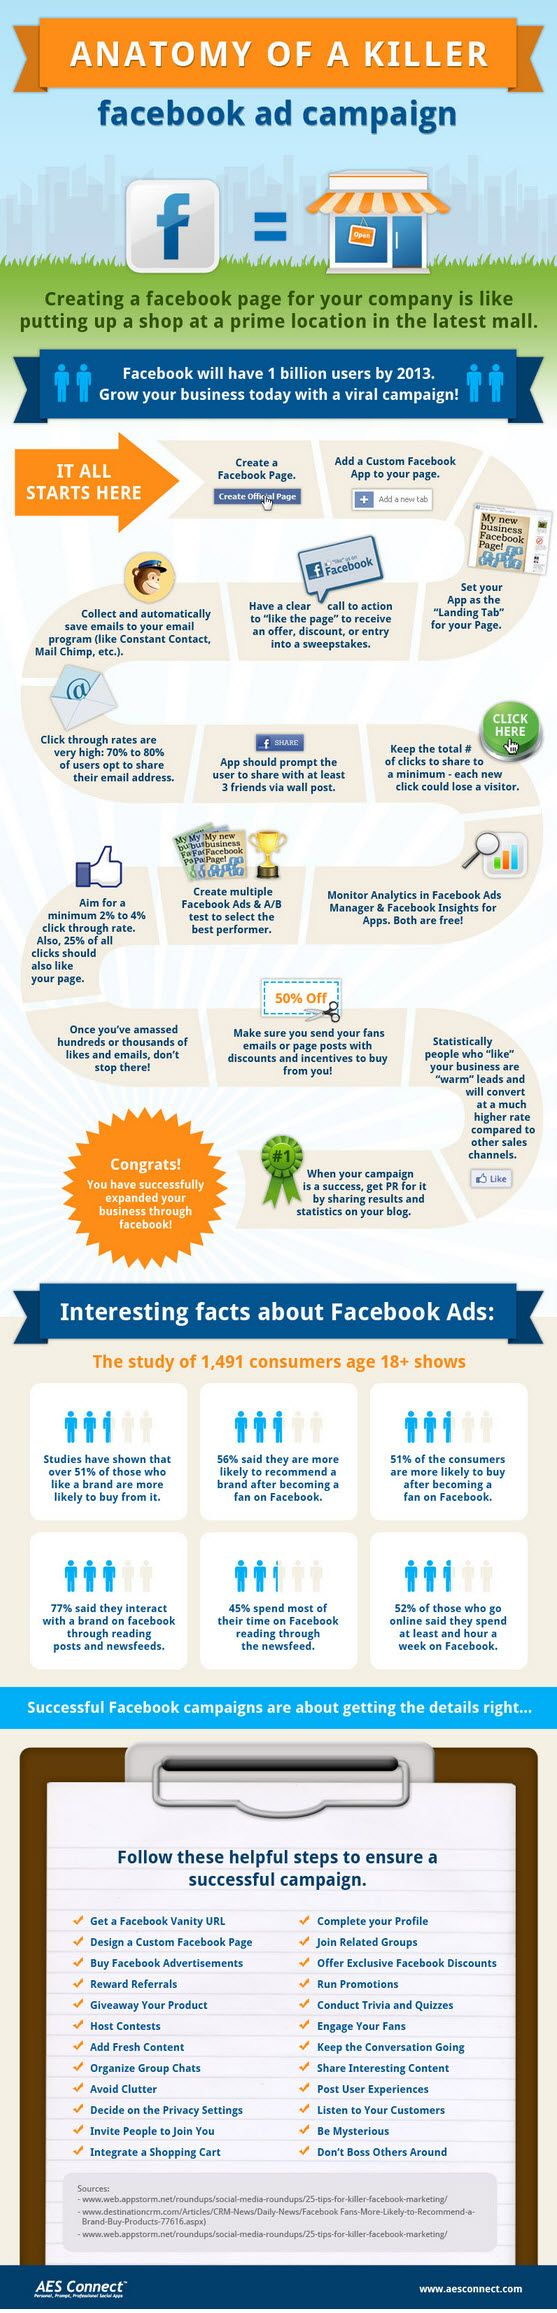 Anatomy of a Killer #Facebook Ad Campaign #Infographic